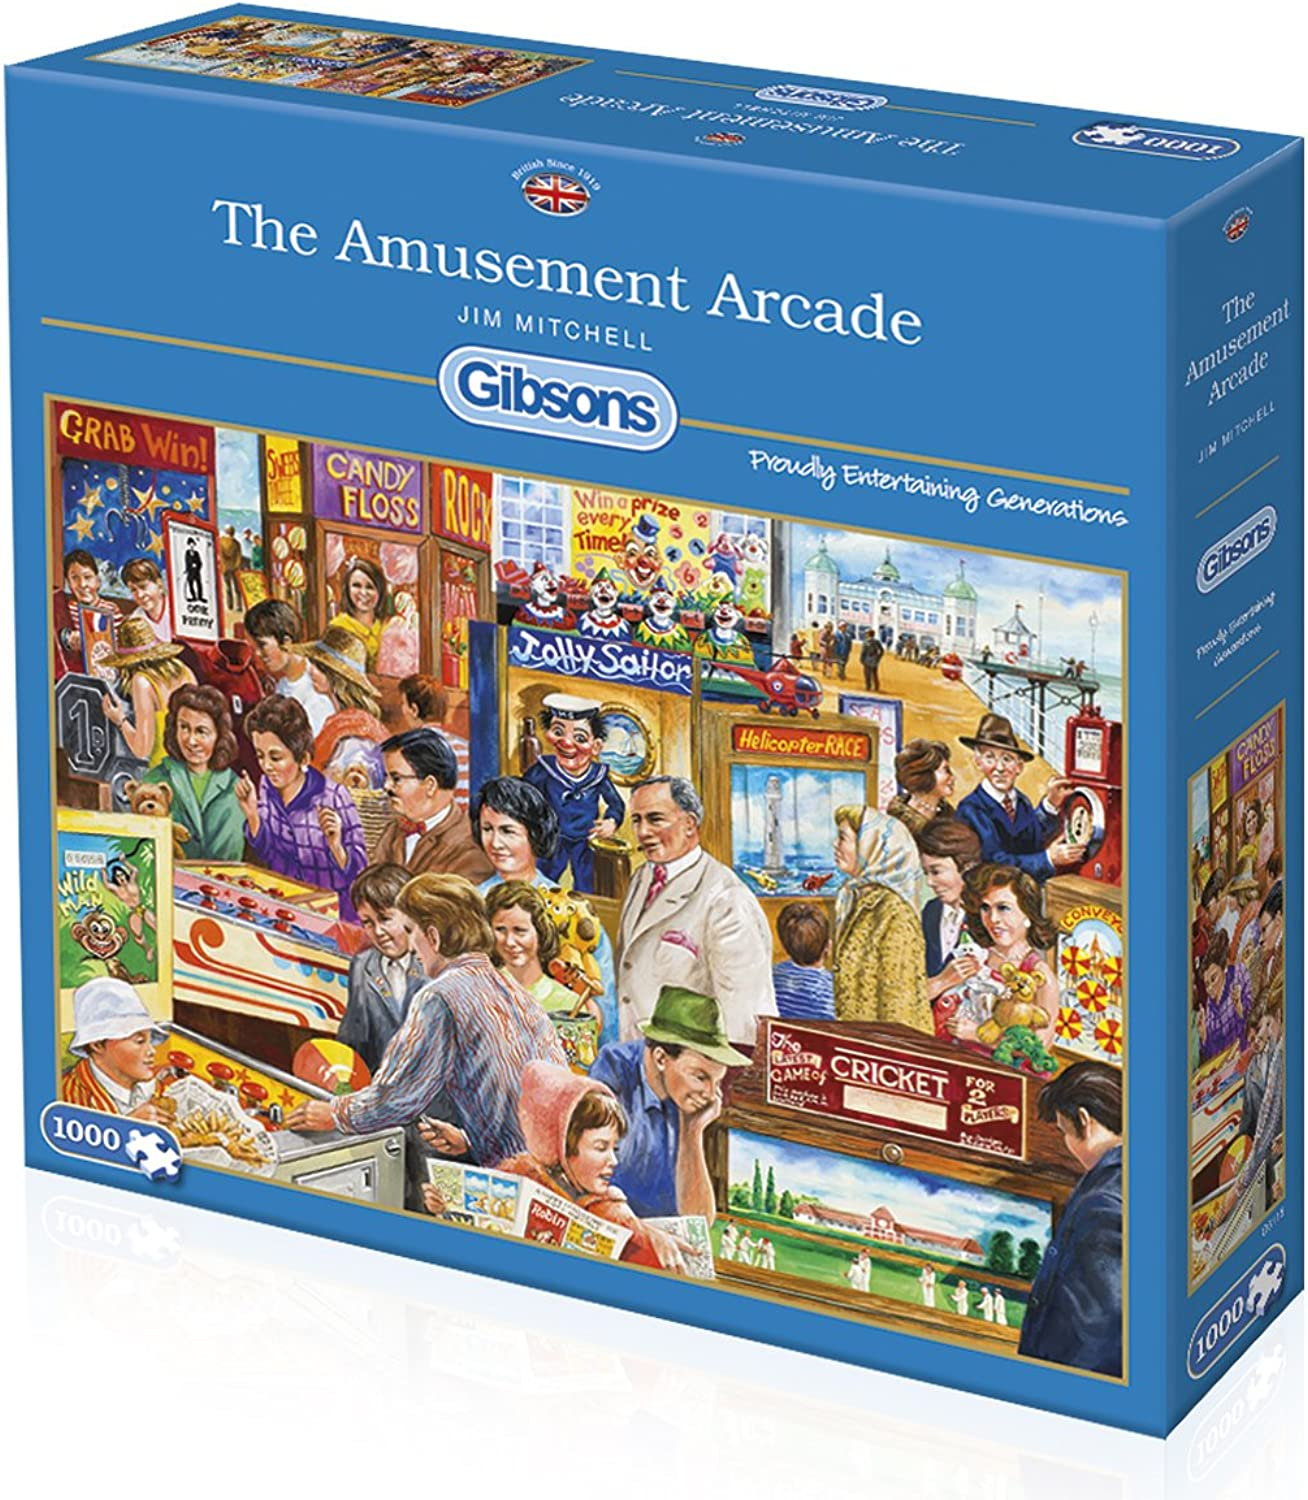 The Amusement Arcade by Jim Mitchell 1000 piece jigsaw puzzle